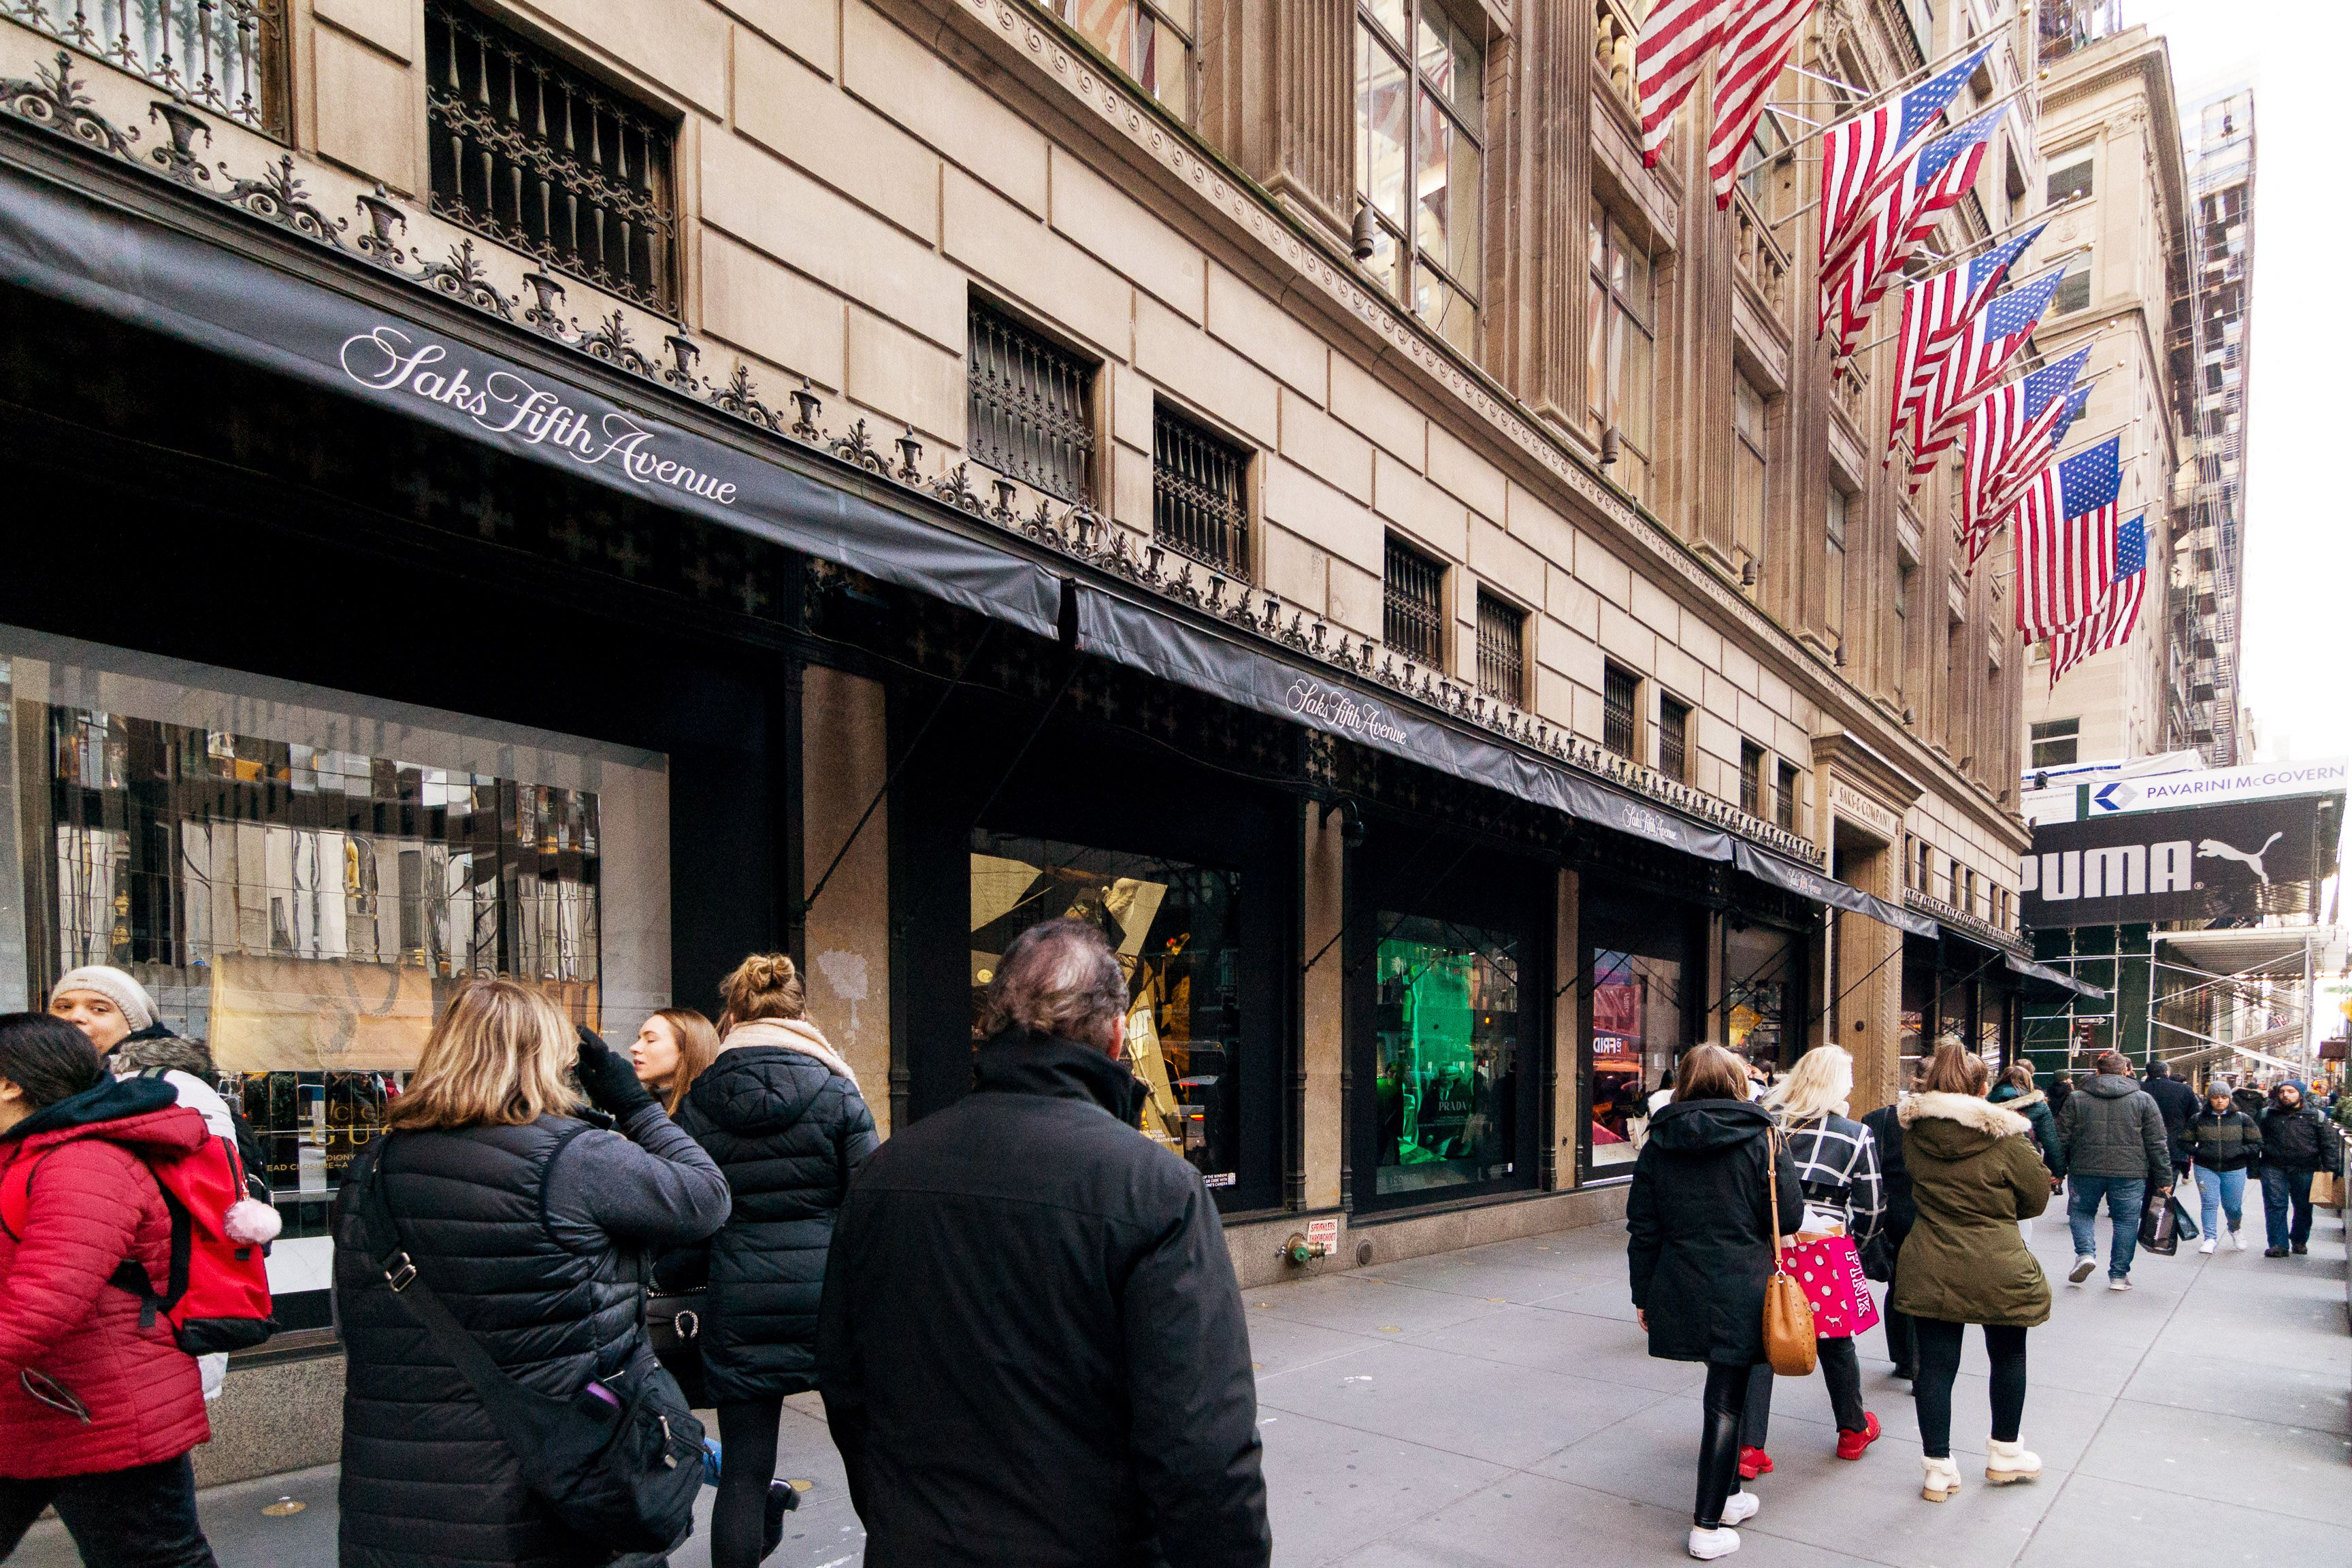 Exterior of Saks Fifth Avenue